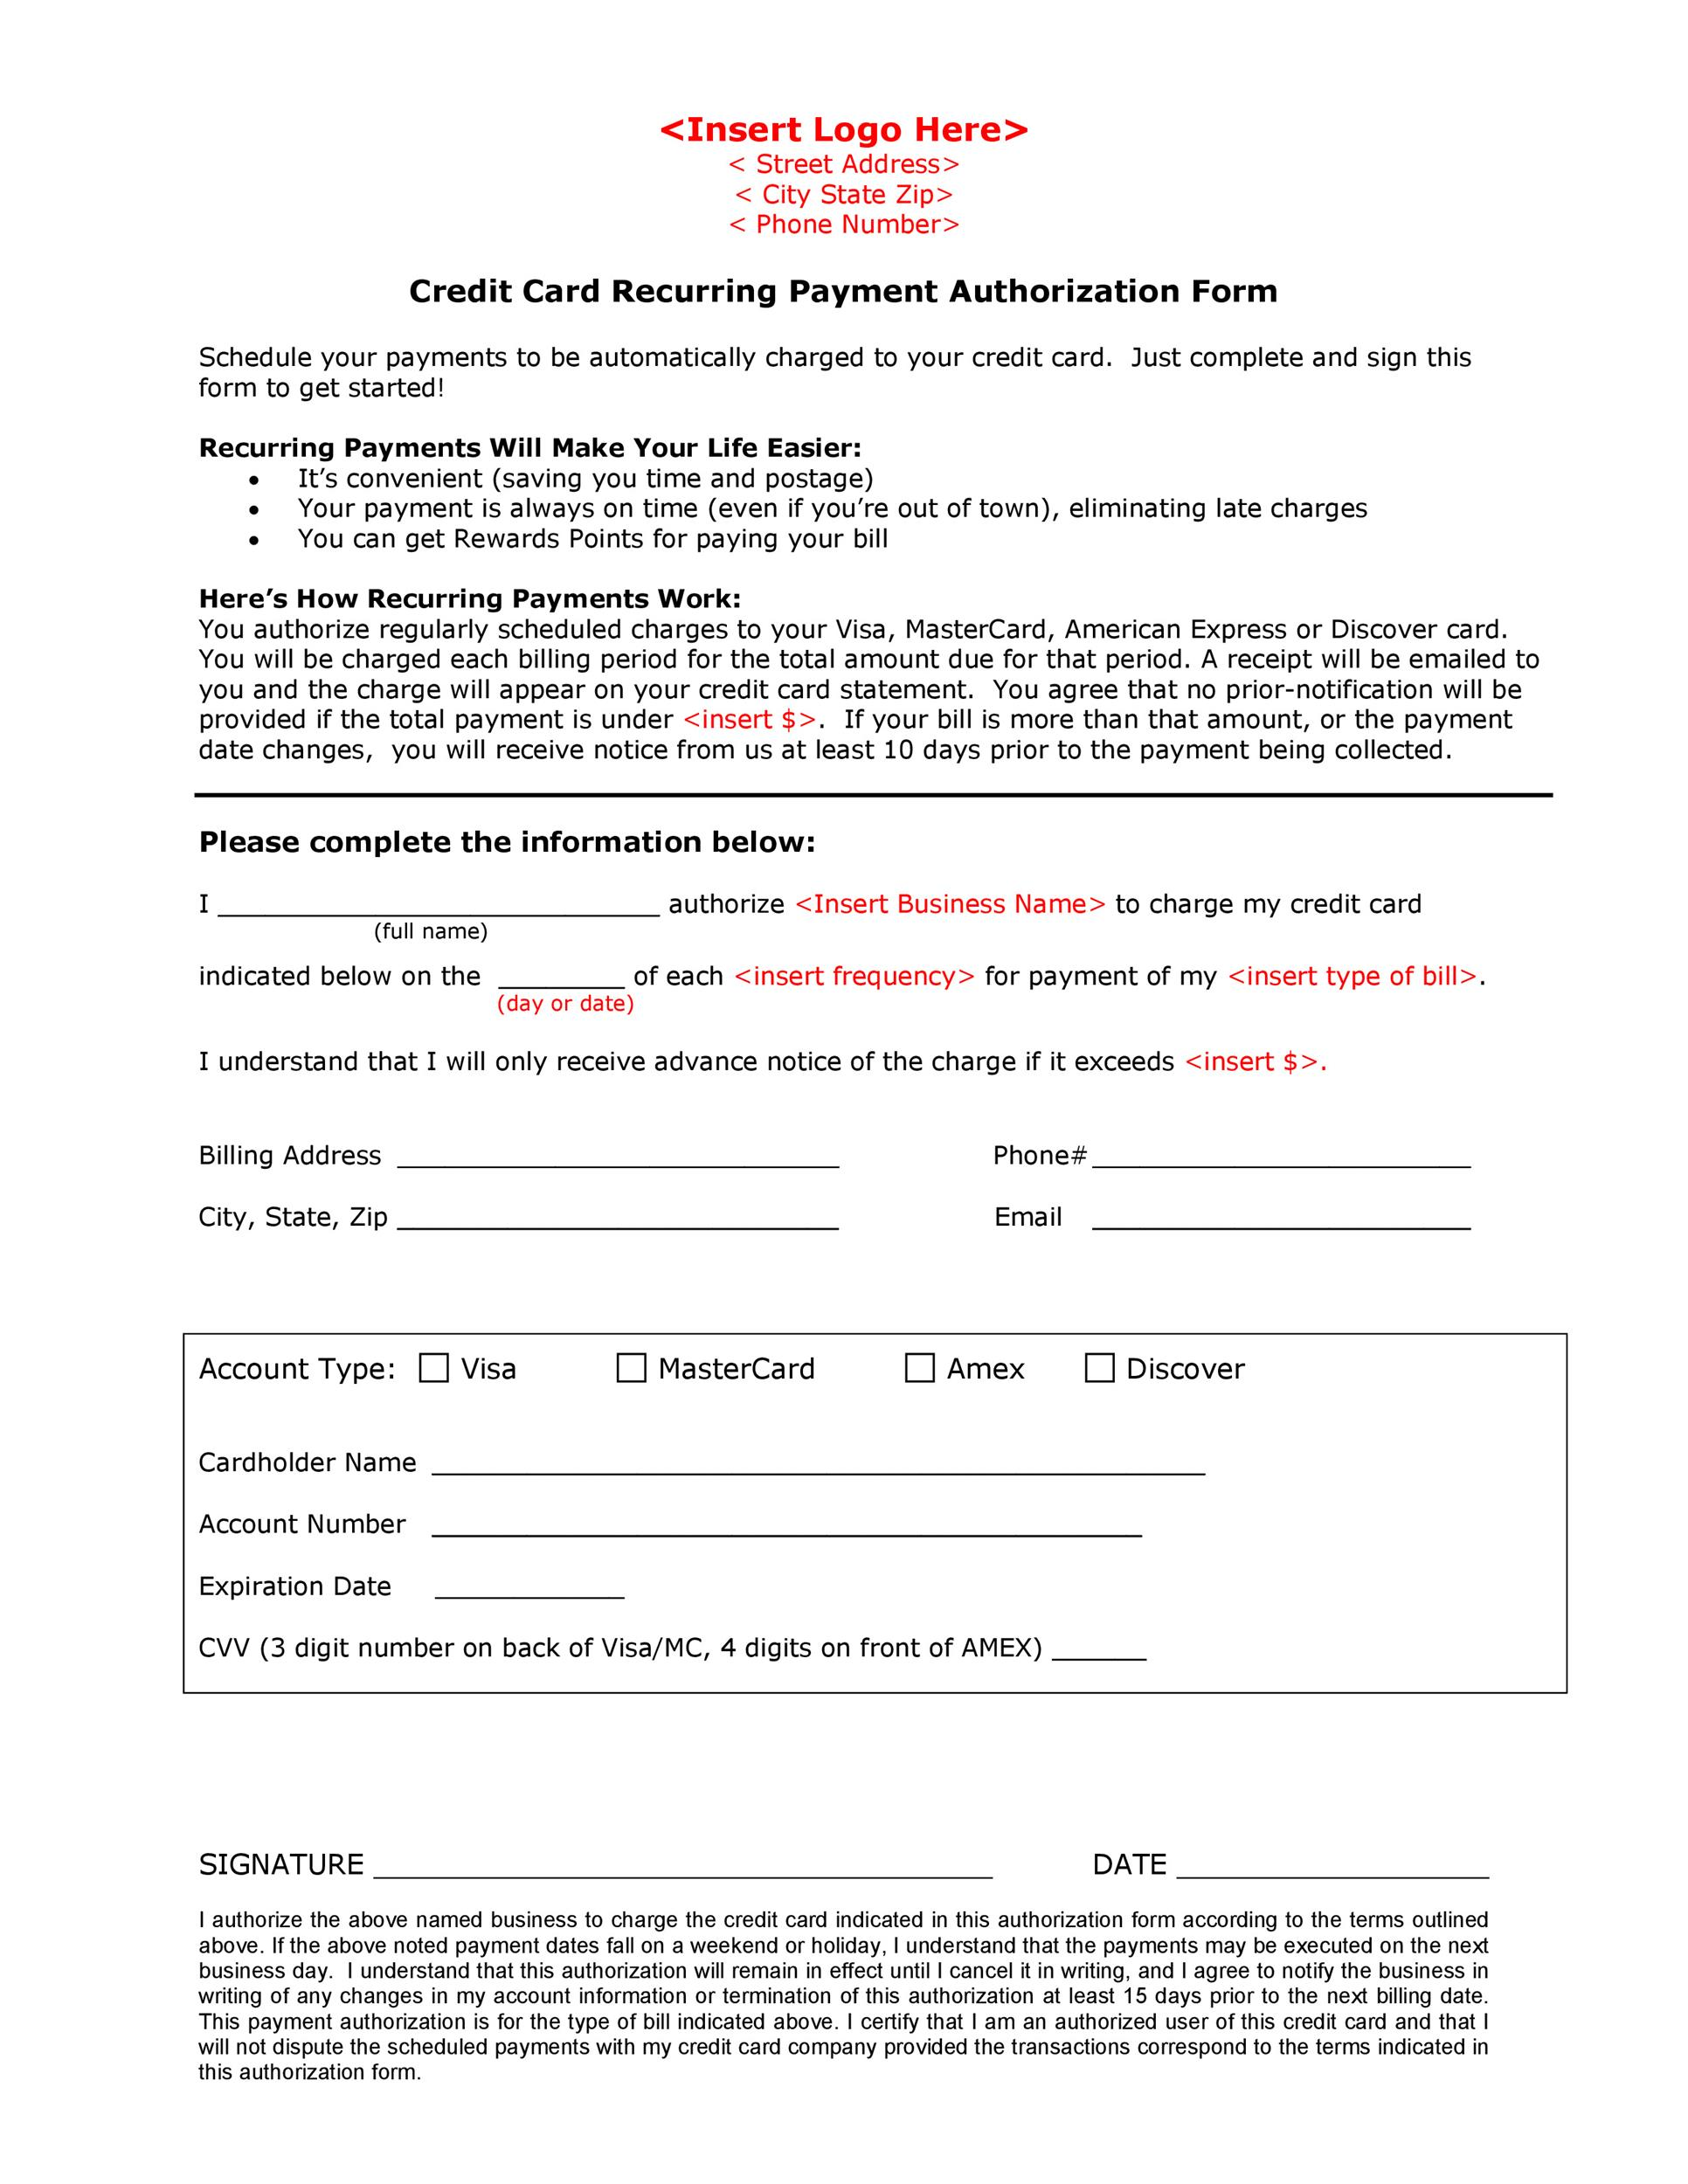 Free credit card authorization form template 02